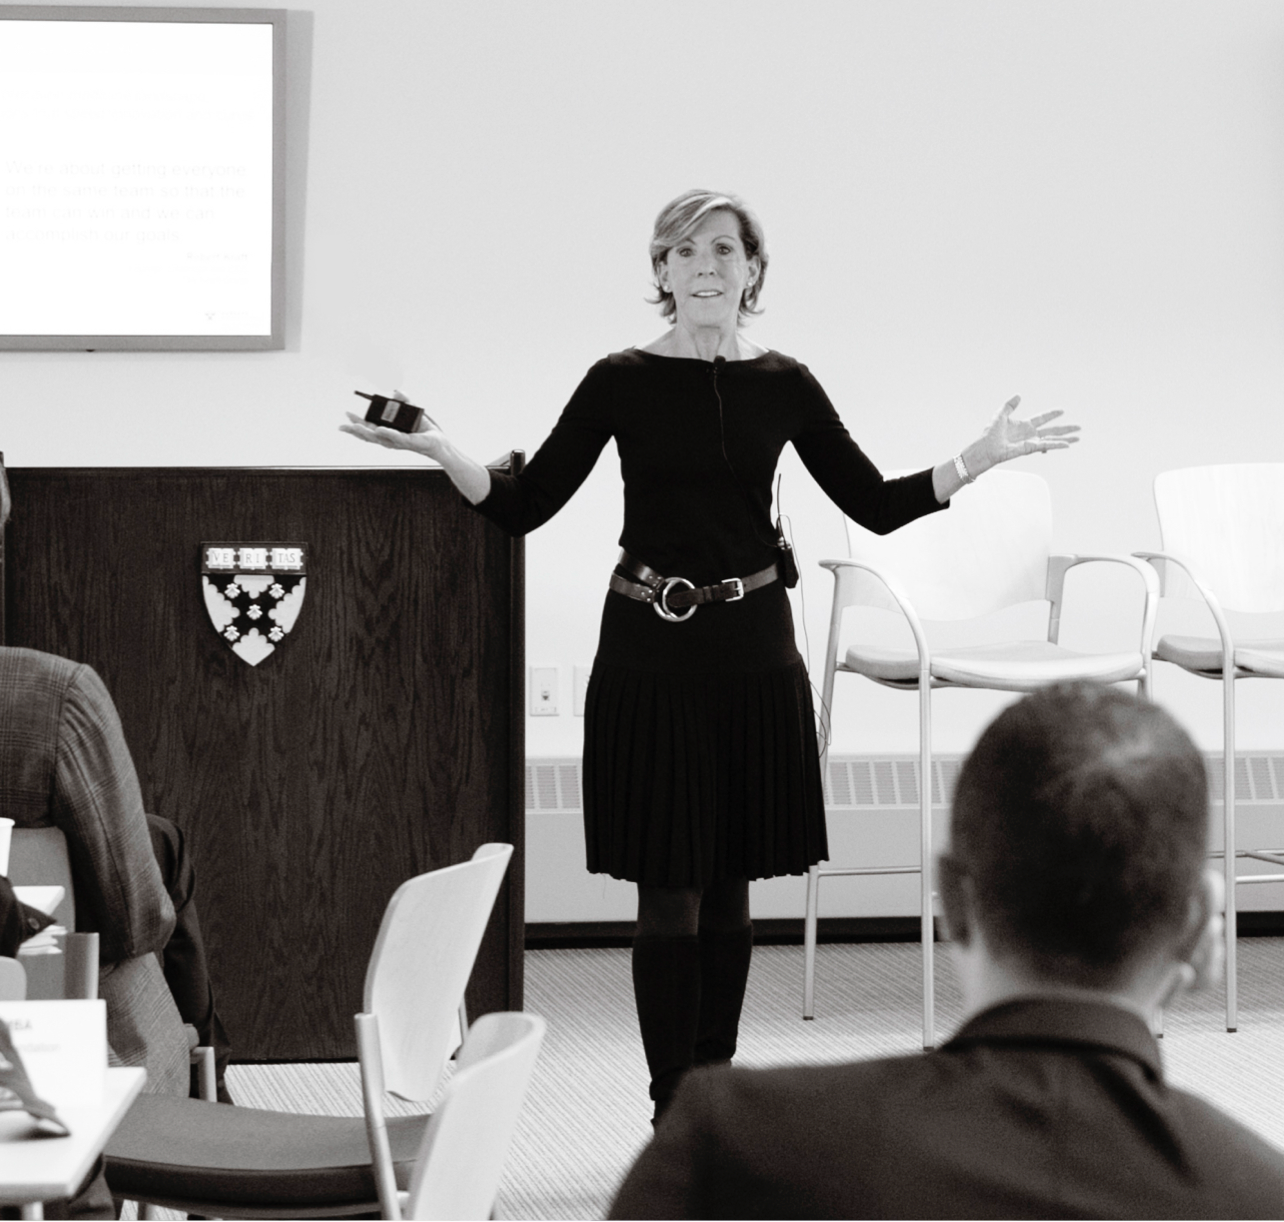 Kathy leads a presentation at Harvard Business School